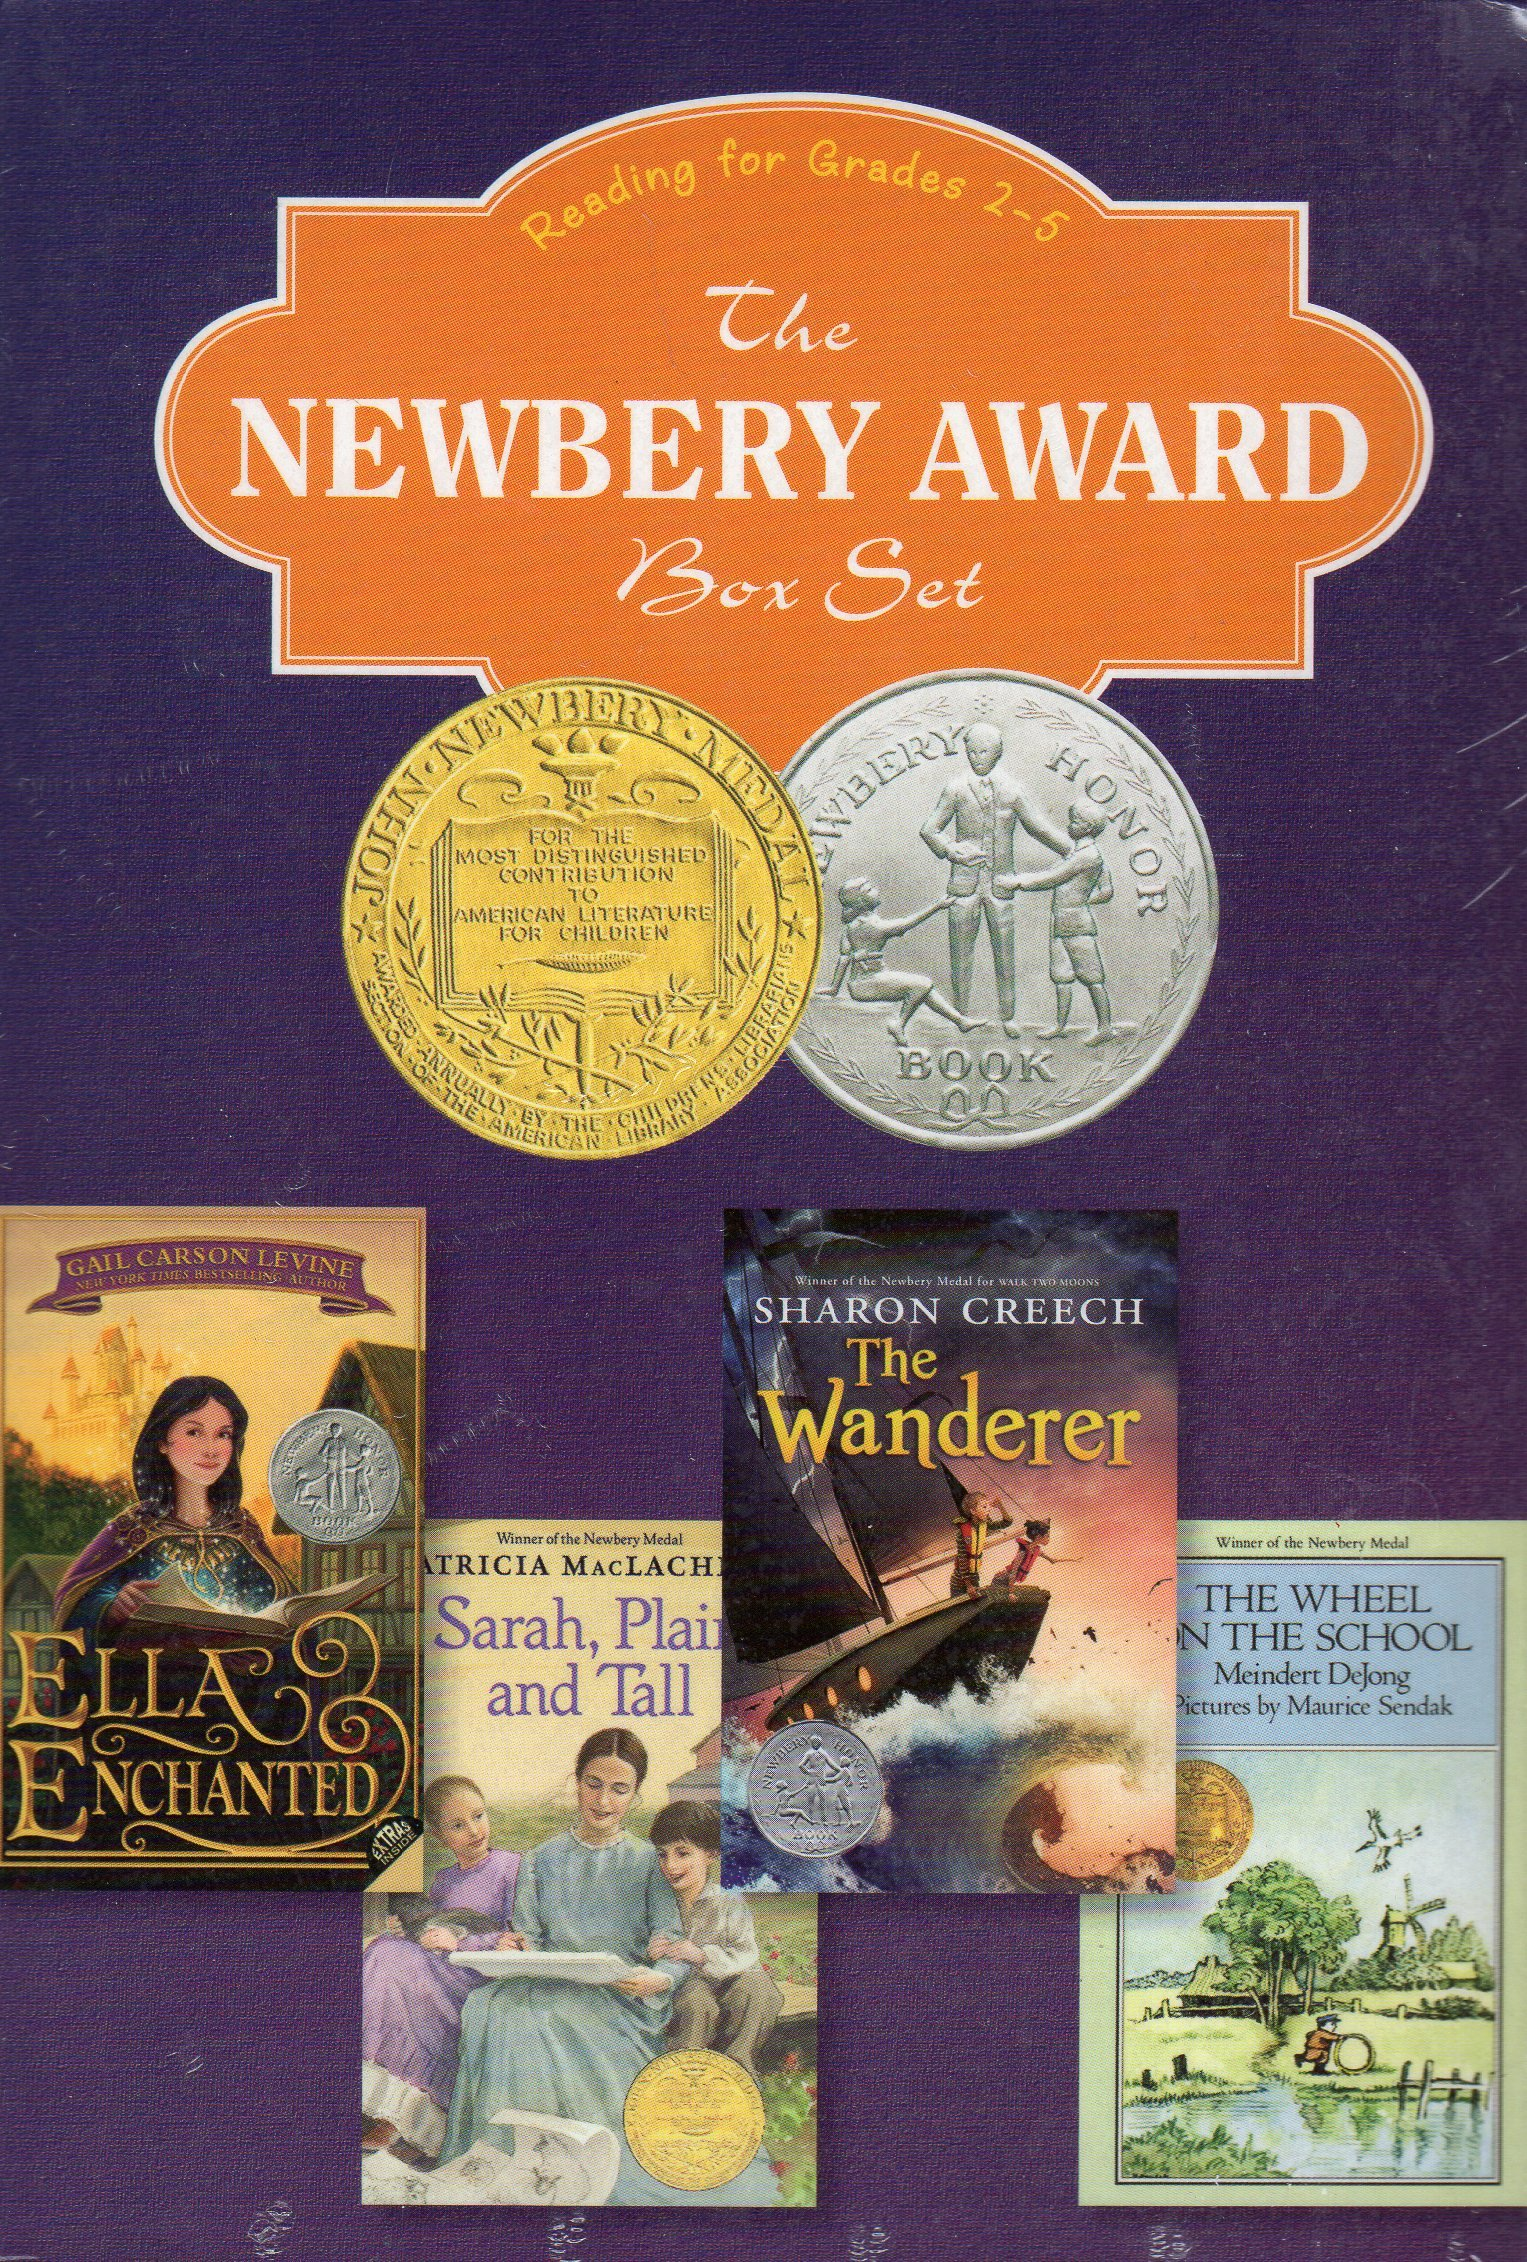 Read Online The Newbery Award Box Set - Reading for Grades 2-5. The Wheel on the School; The Wanderer; Sarah Plain and Tall; Ella Enchanted pdf